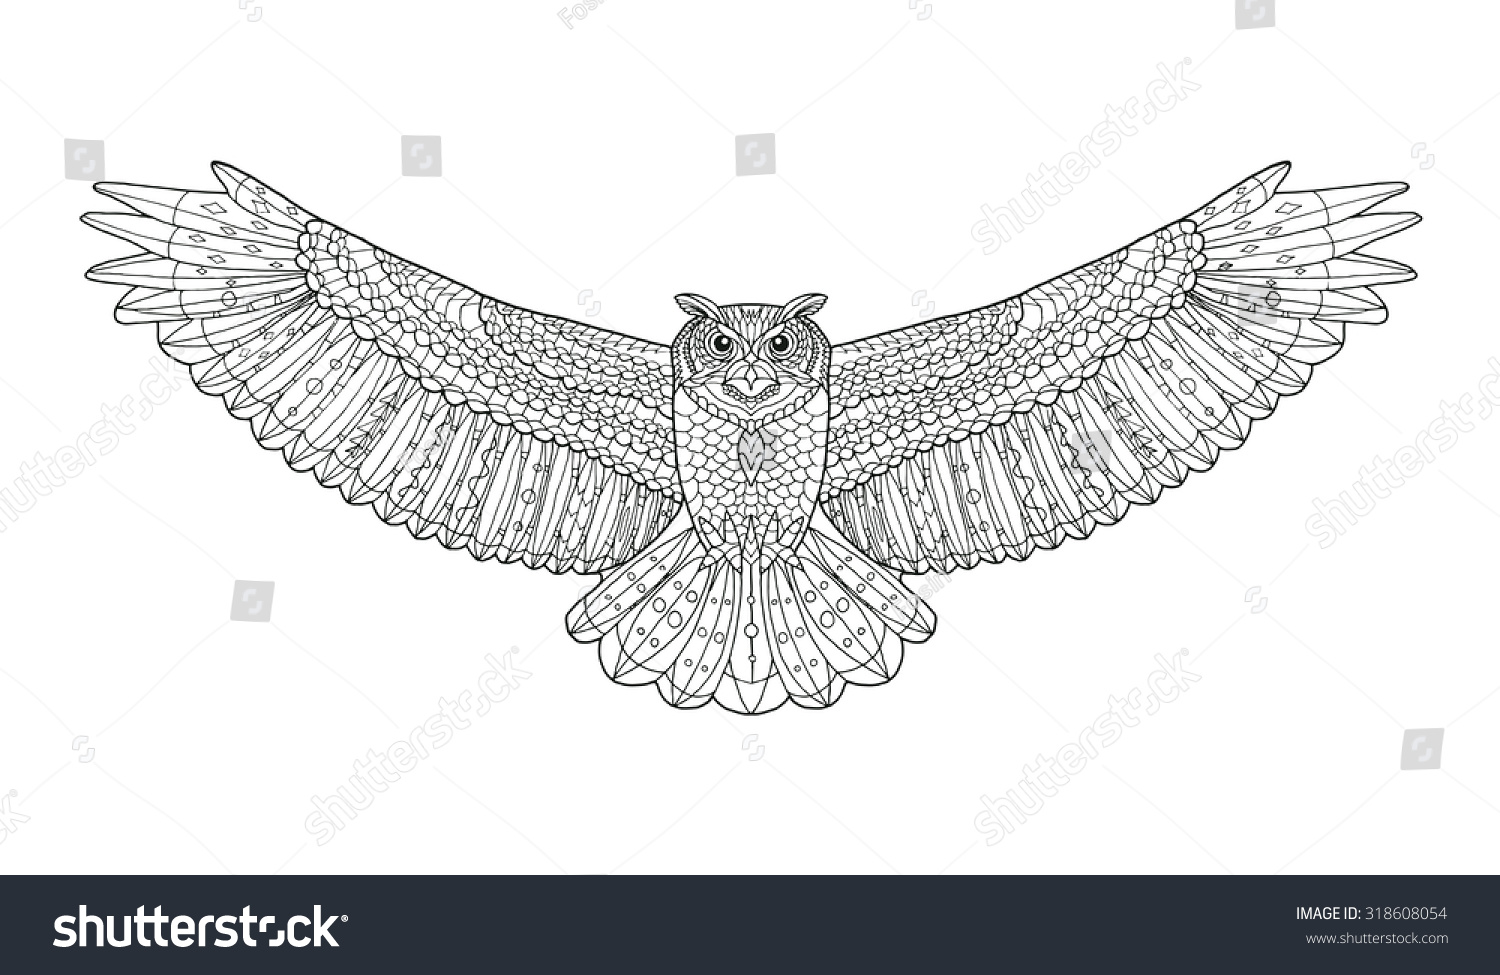 Coloring Pages Totem Animals : Eagle owl coloring page animal collection stock vector hd